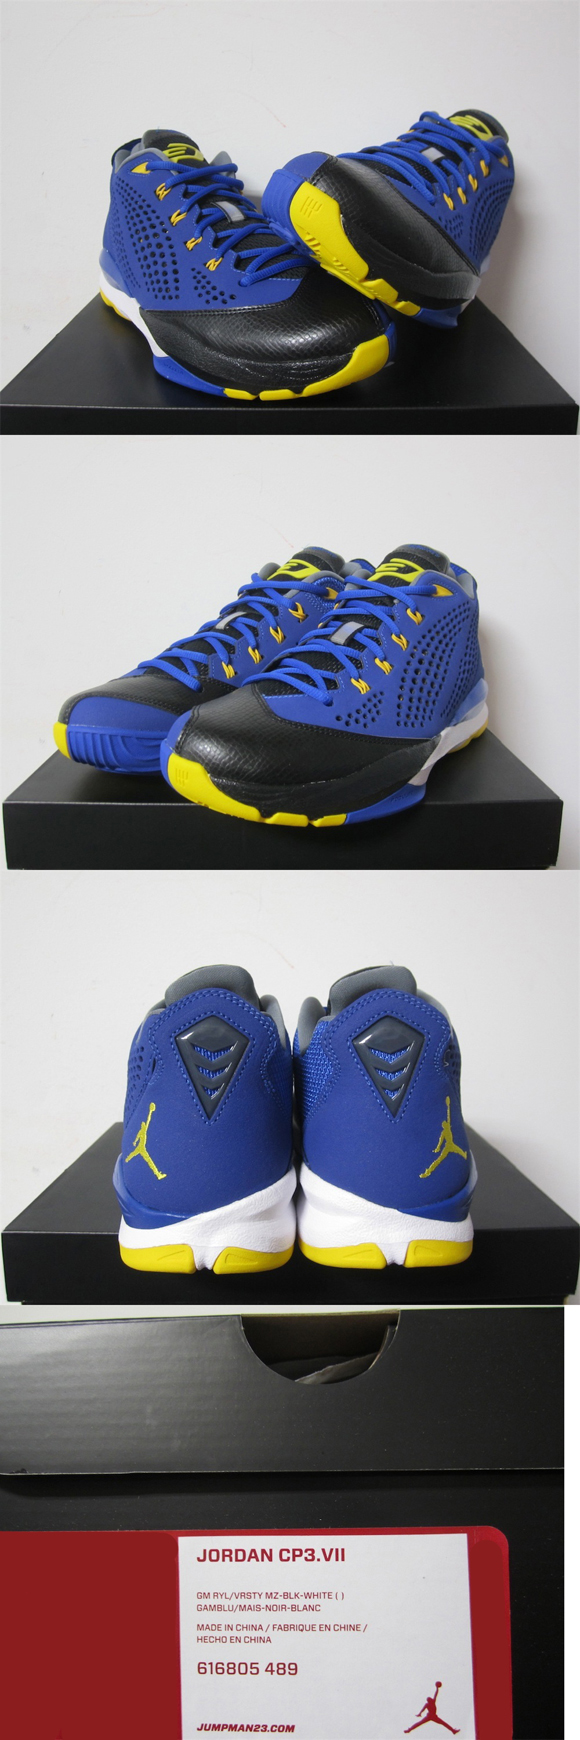 watch 33bbc 1c31d Jordan CP3.VII (7)  Laney  - Another ...